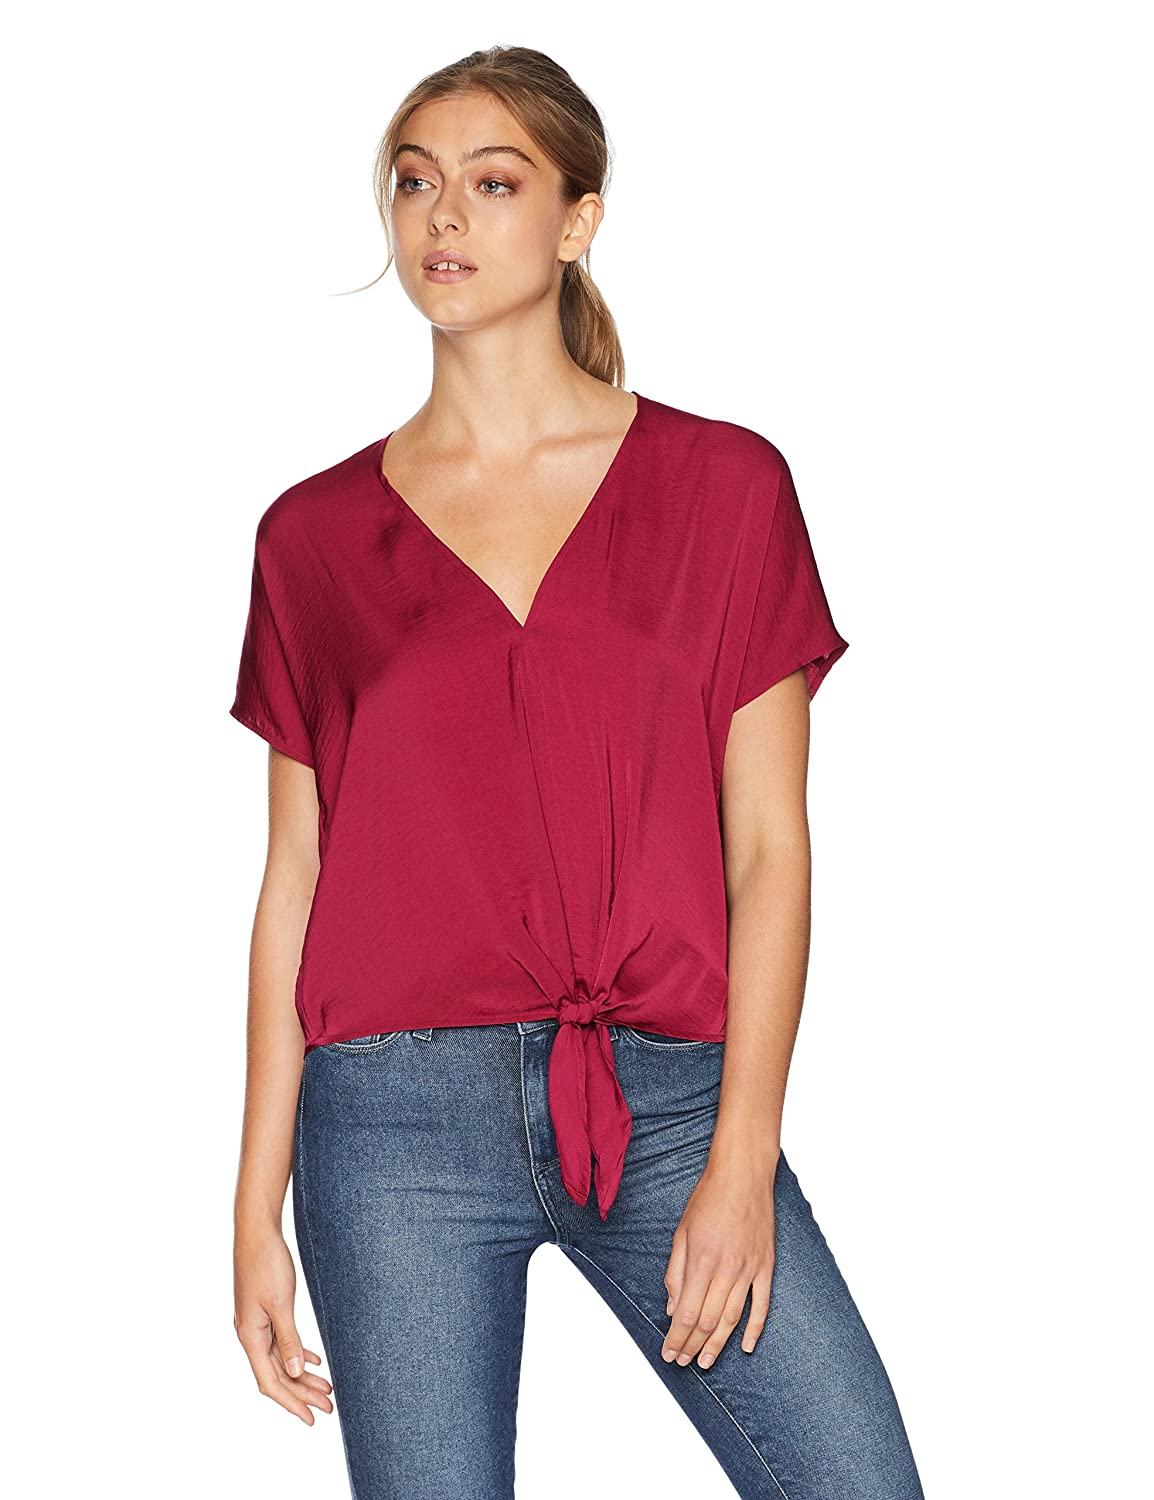 Beet Red Lucky Brand Womens Tie Front Top Blouse